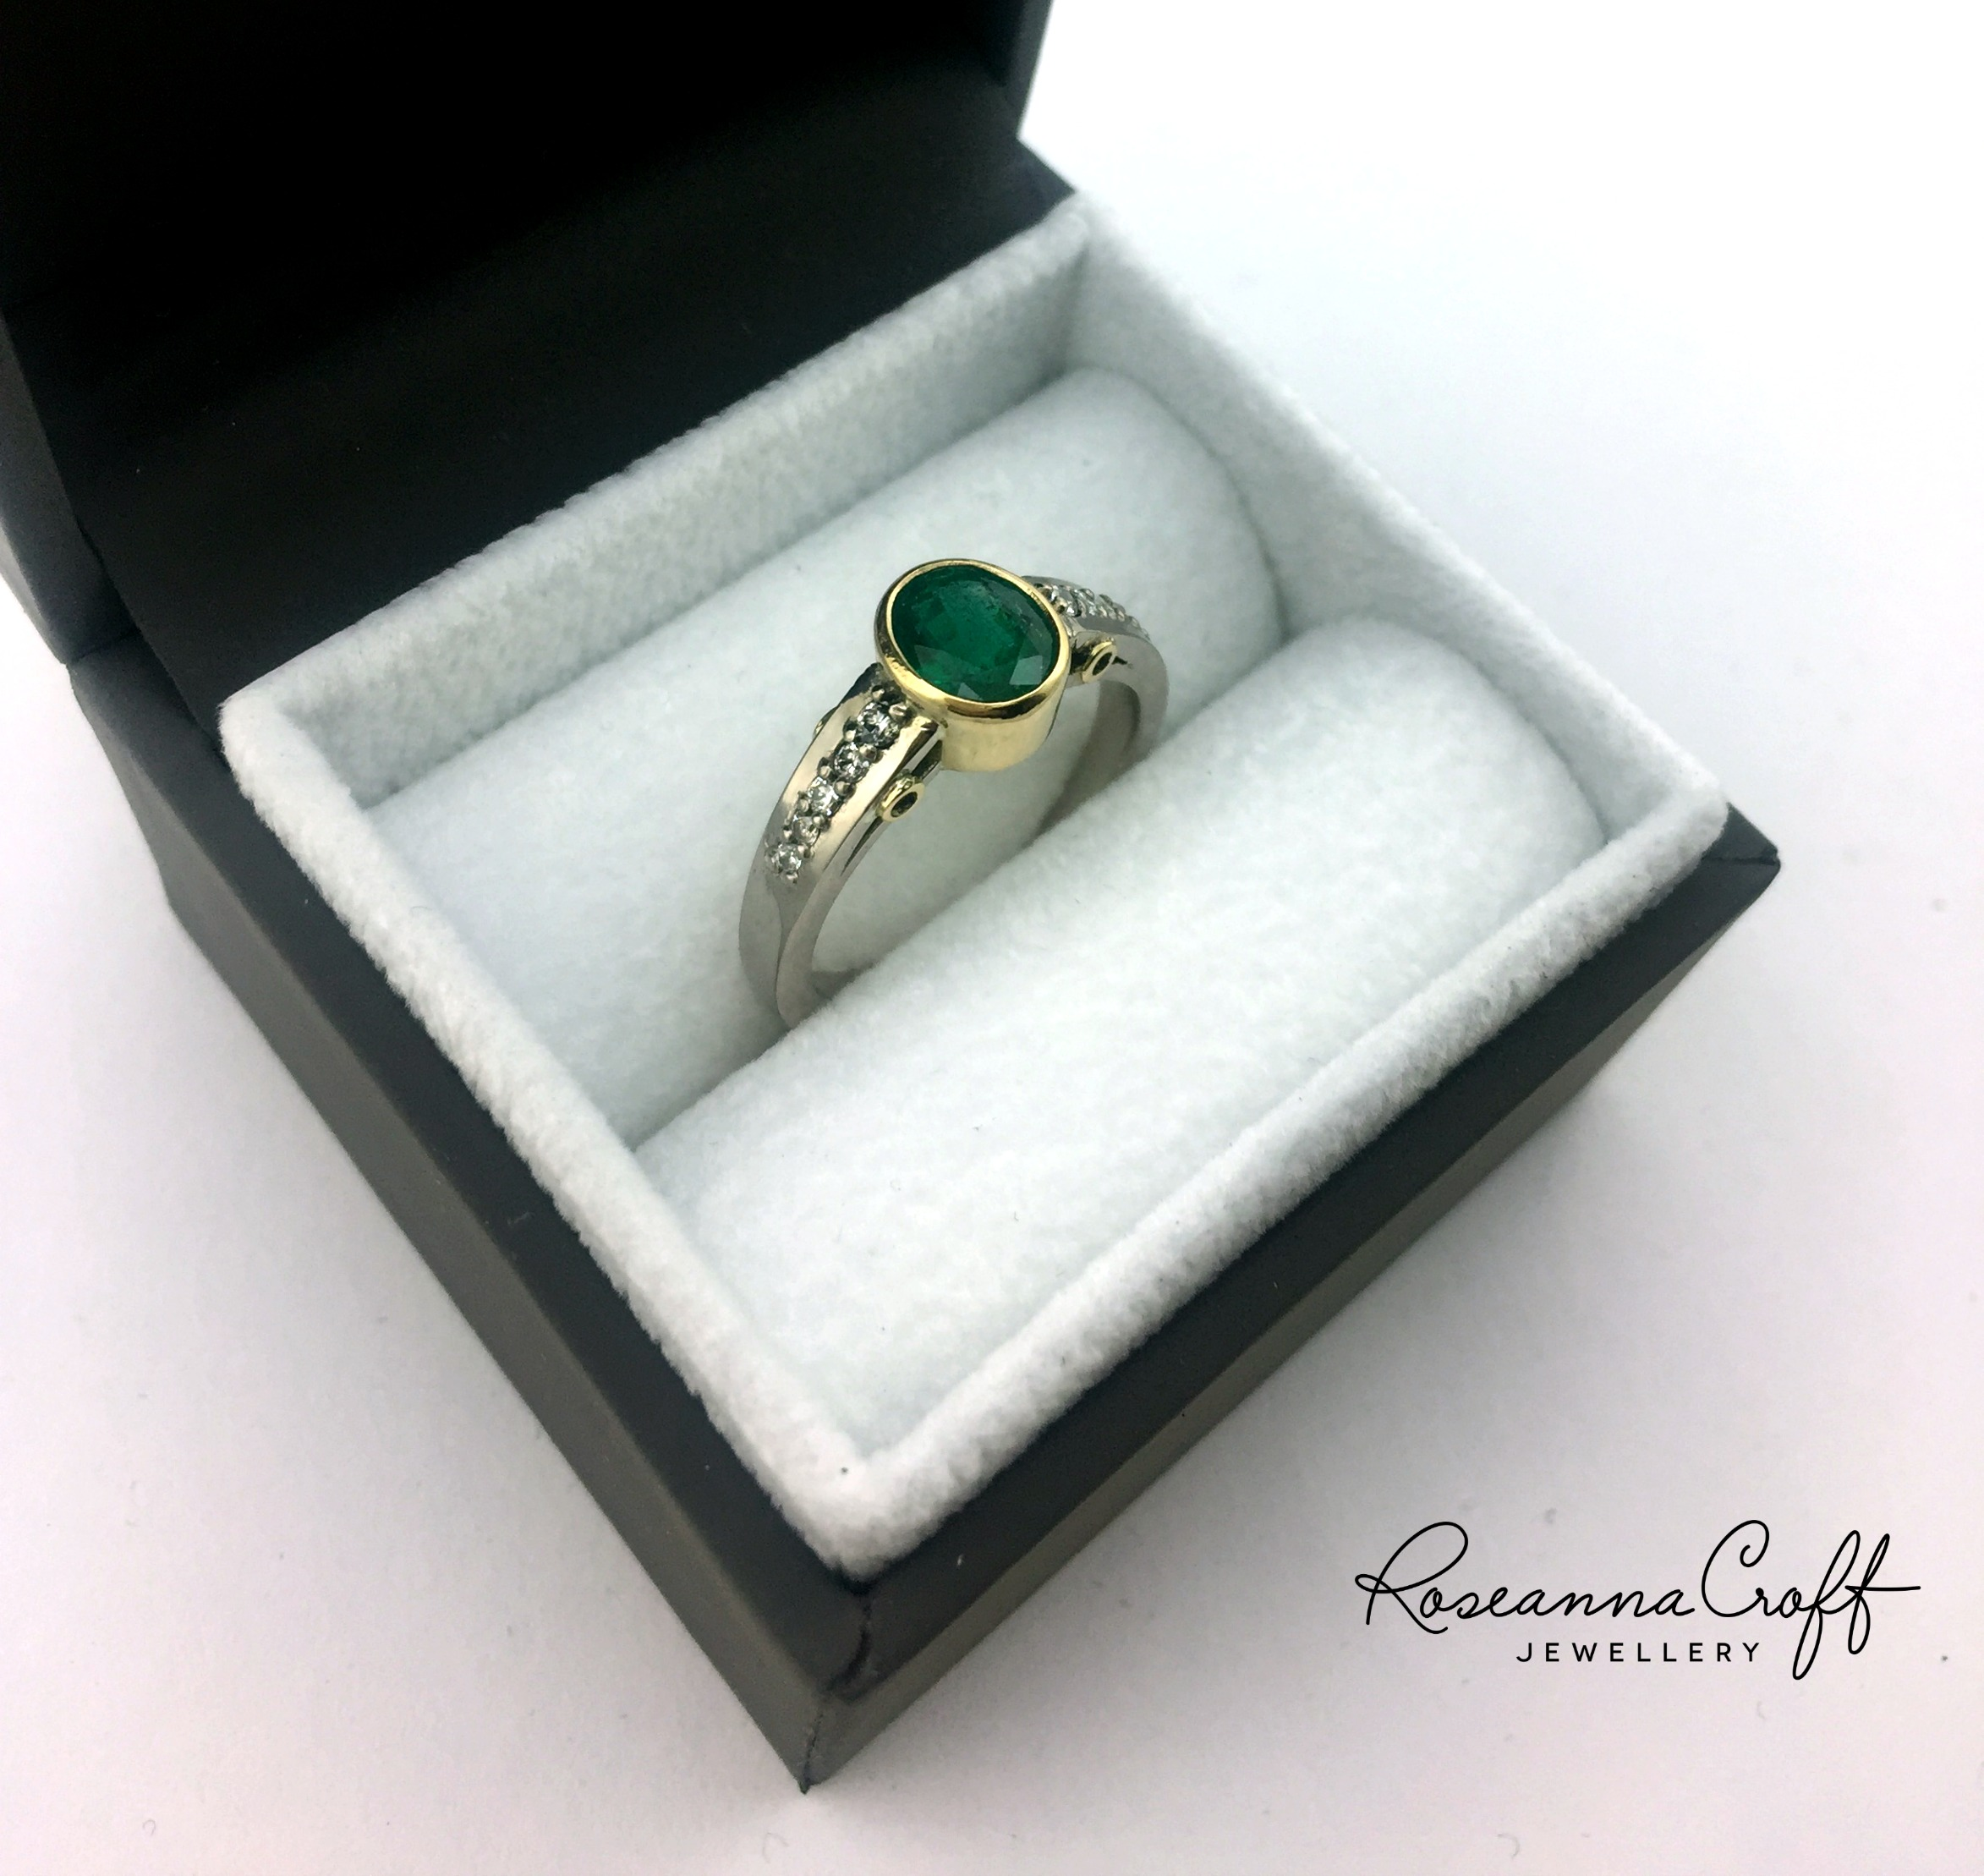 Bespoke Emerald Ring by Roseanna Croft Jewellery